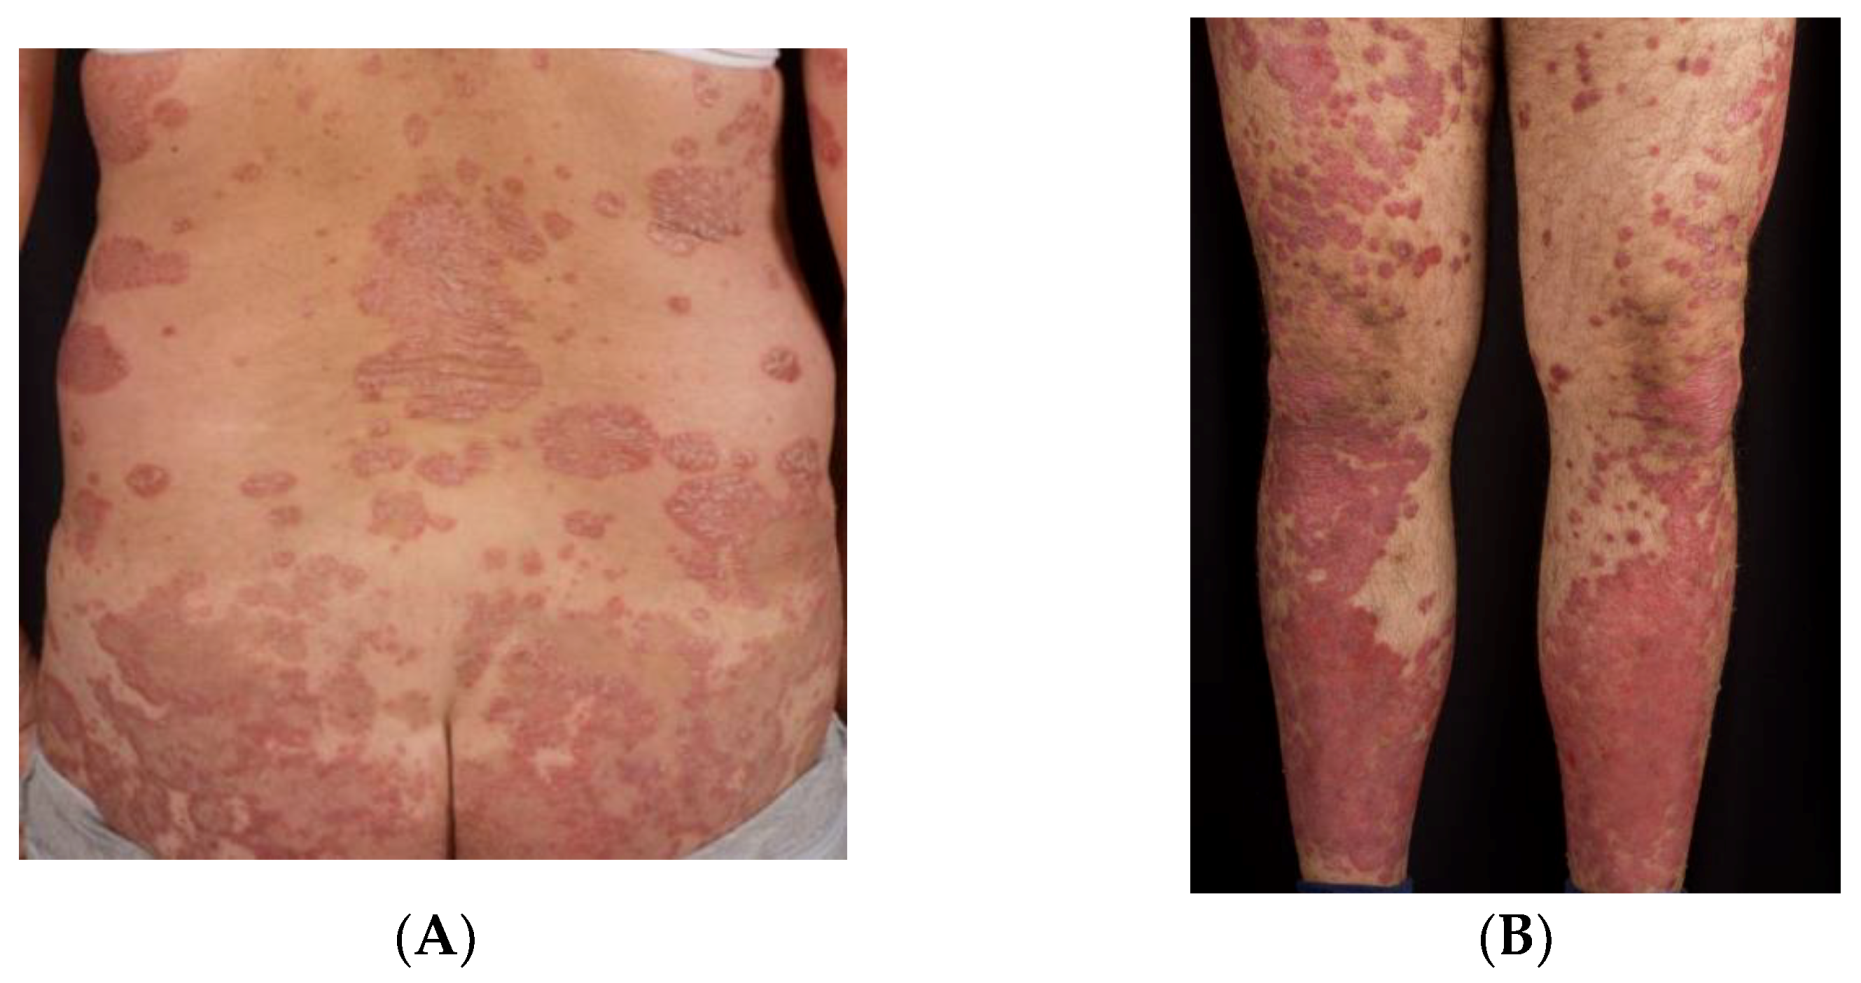 psoriasis cleared up during pregnancy